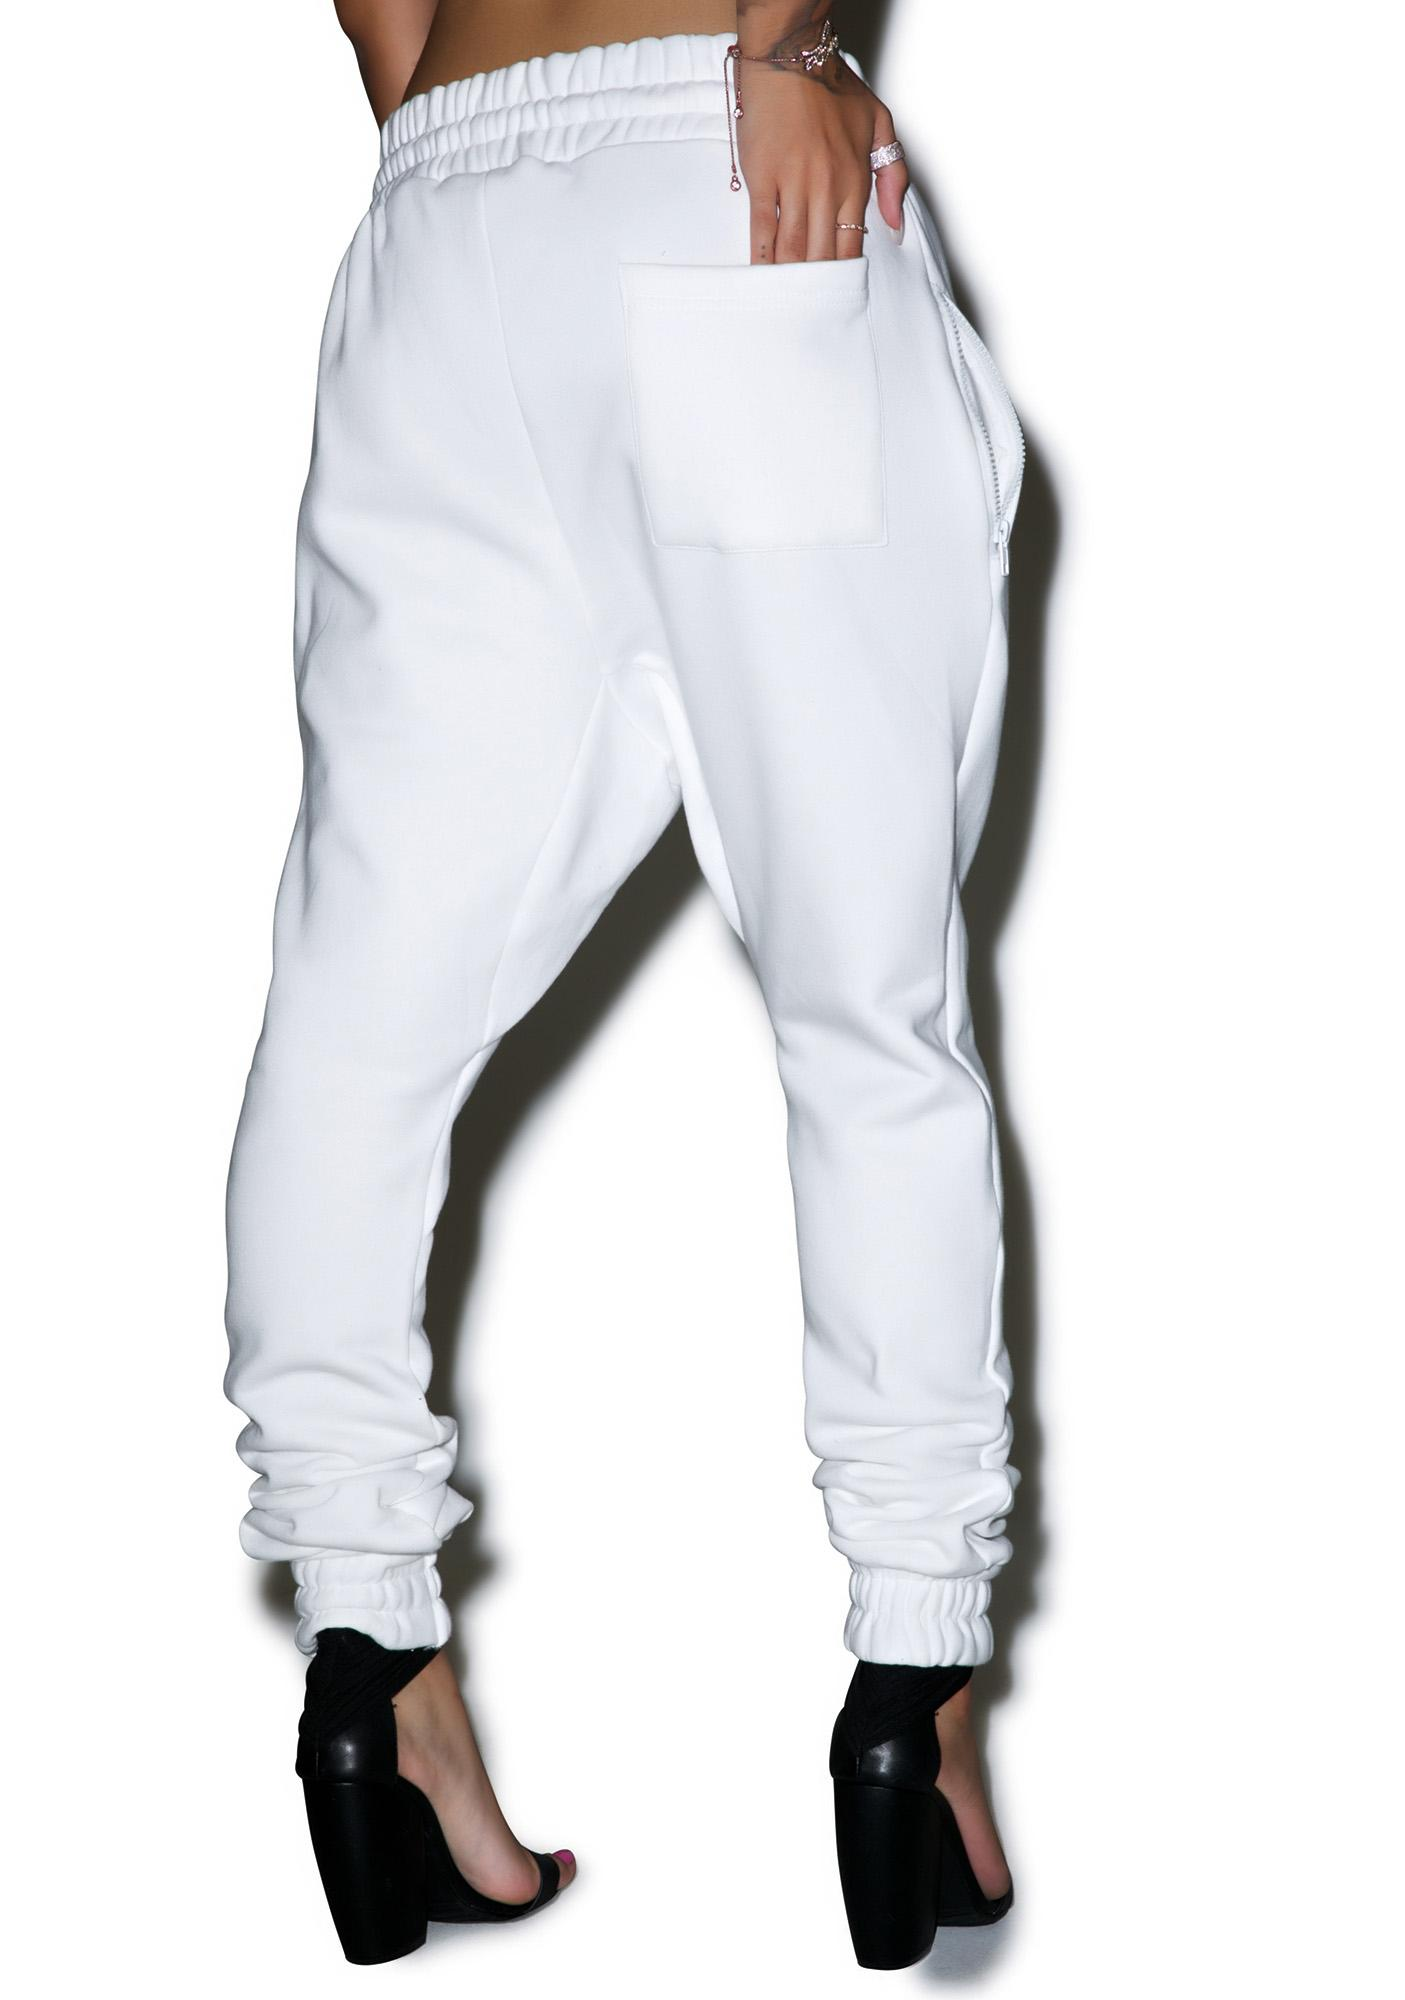 Demian Renucci Wifi Sweatpants